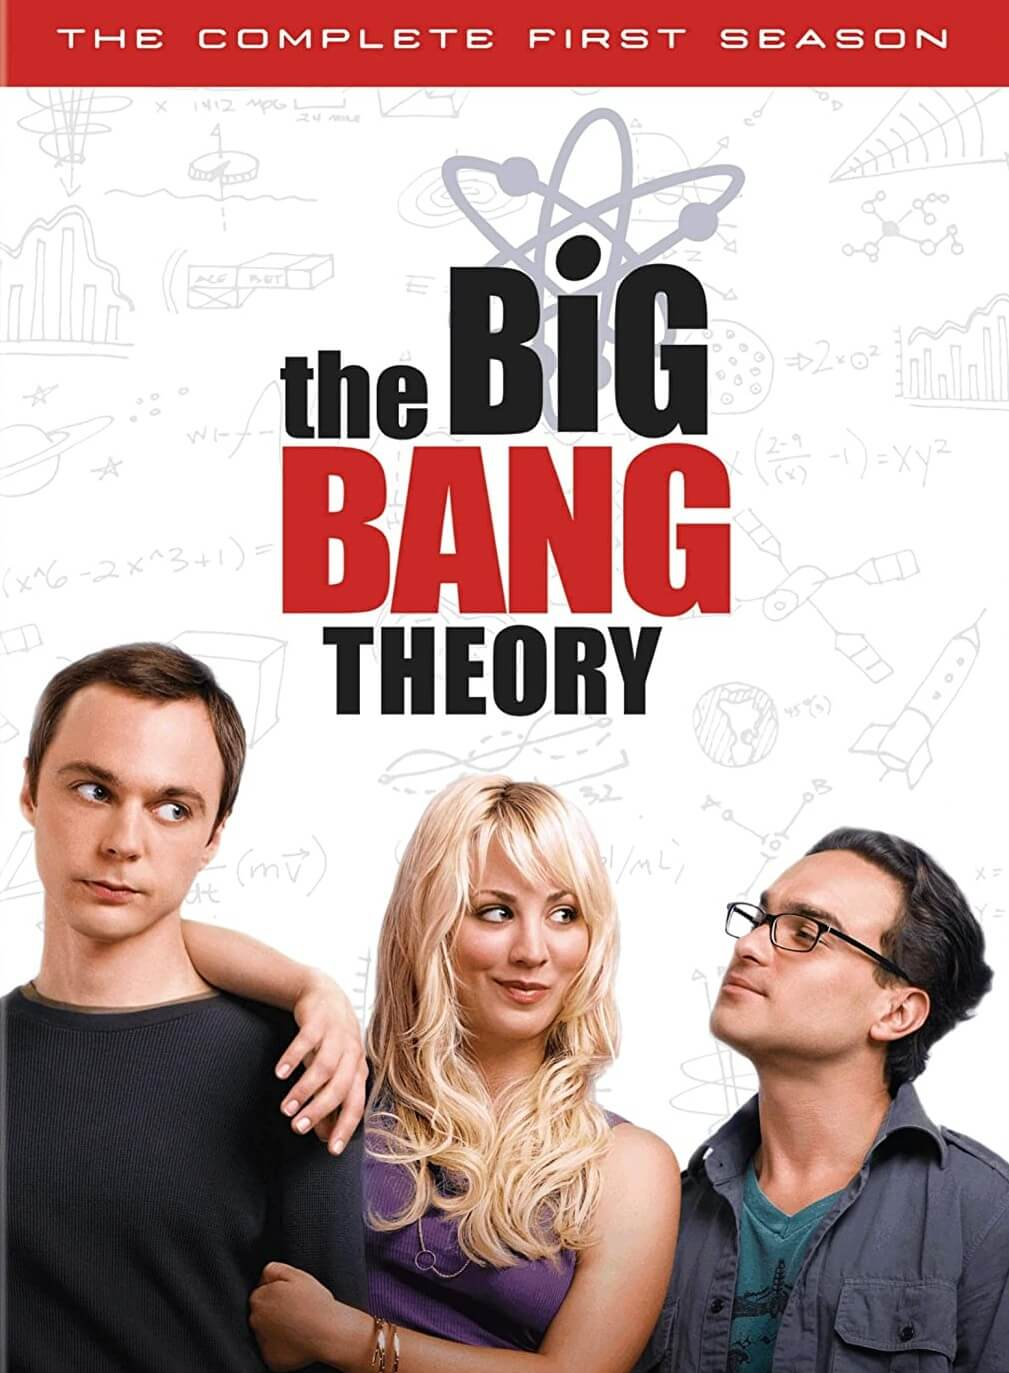 The Big Bang Theory S01 E03